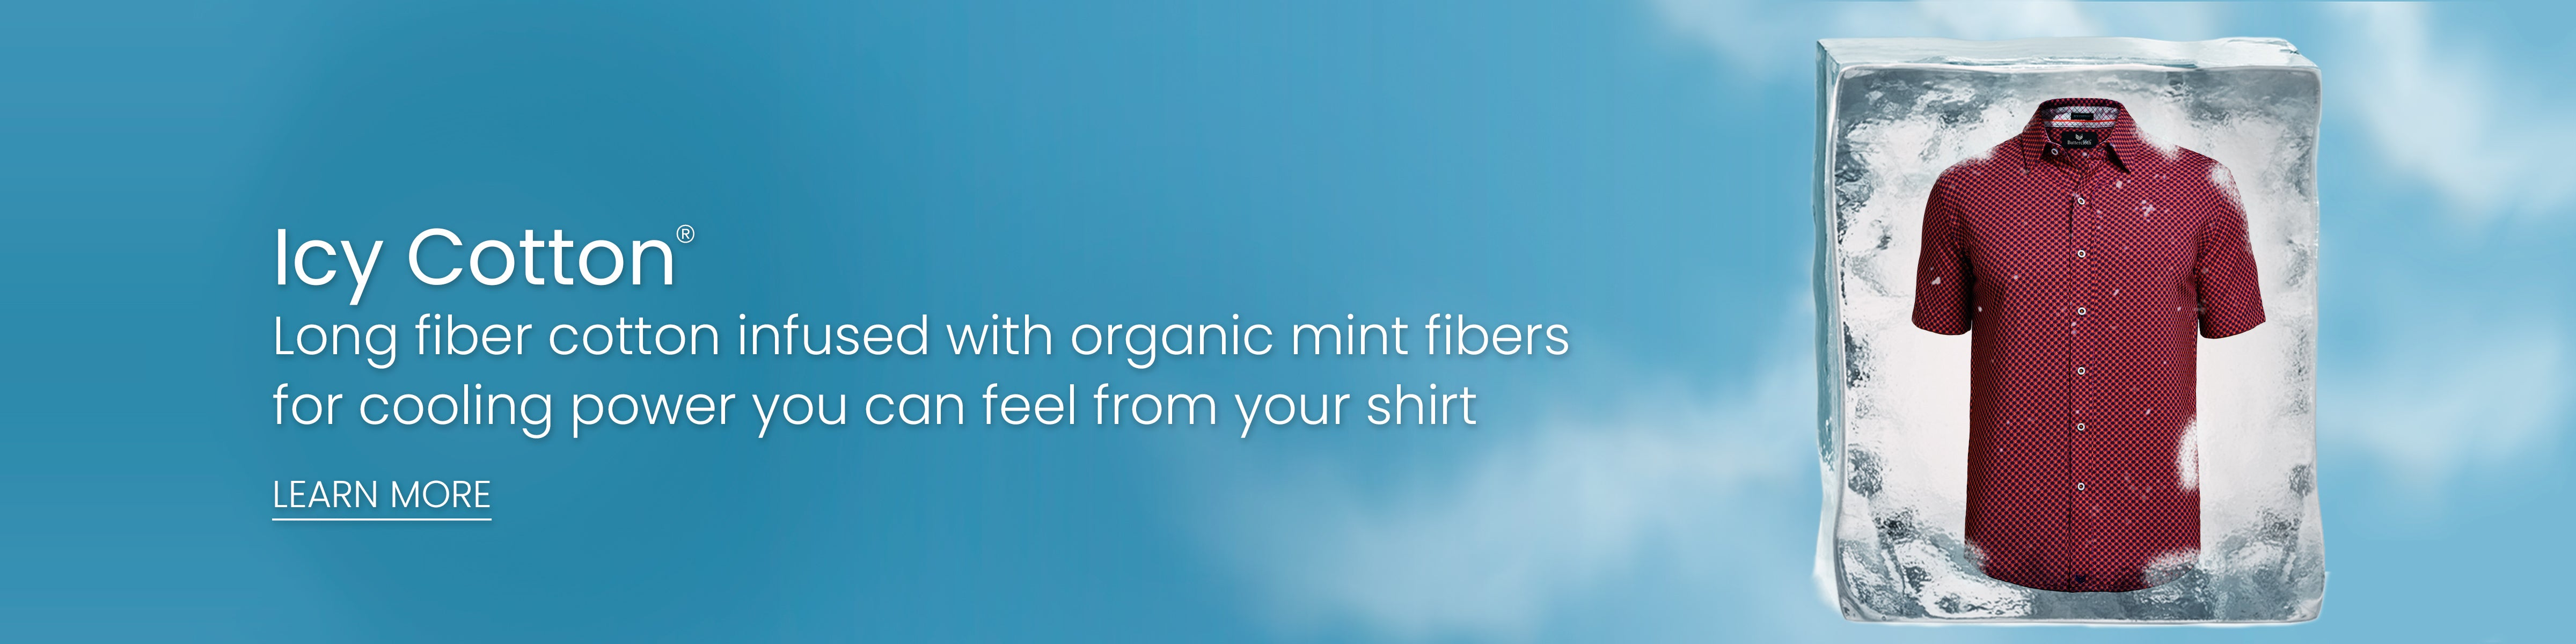 Icy Cotton